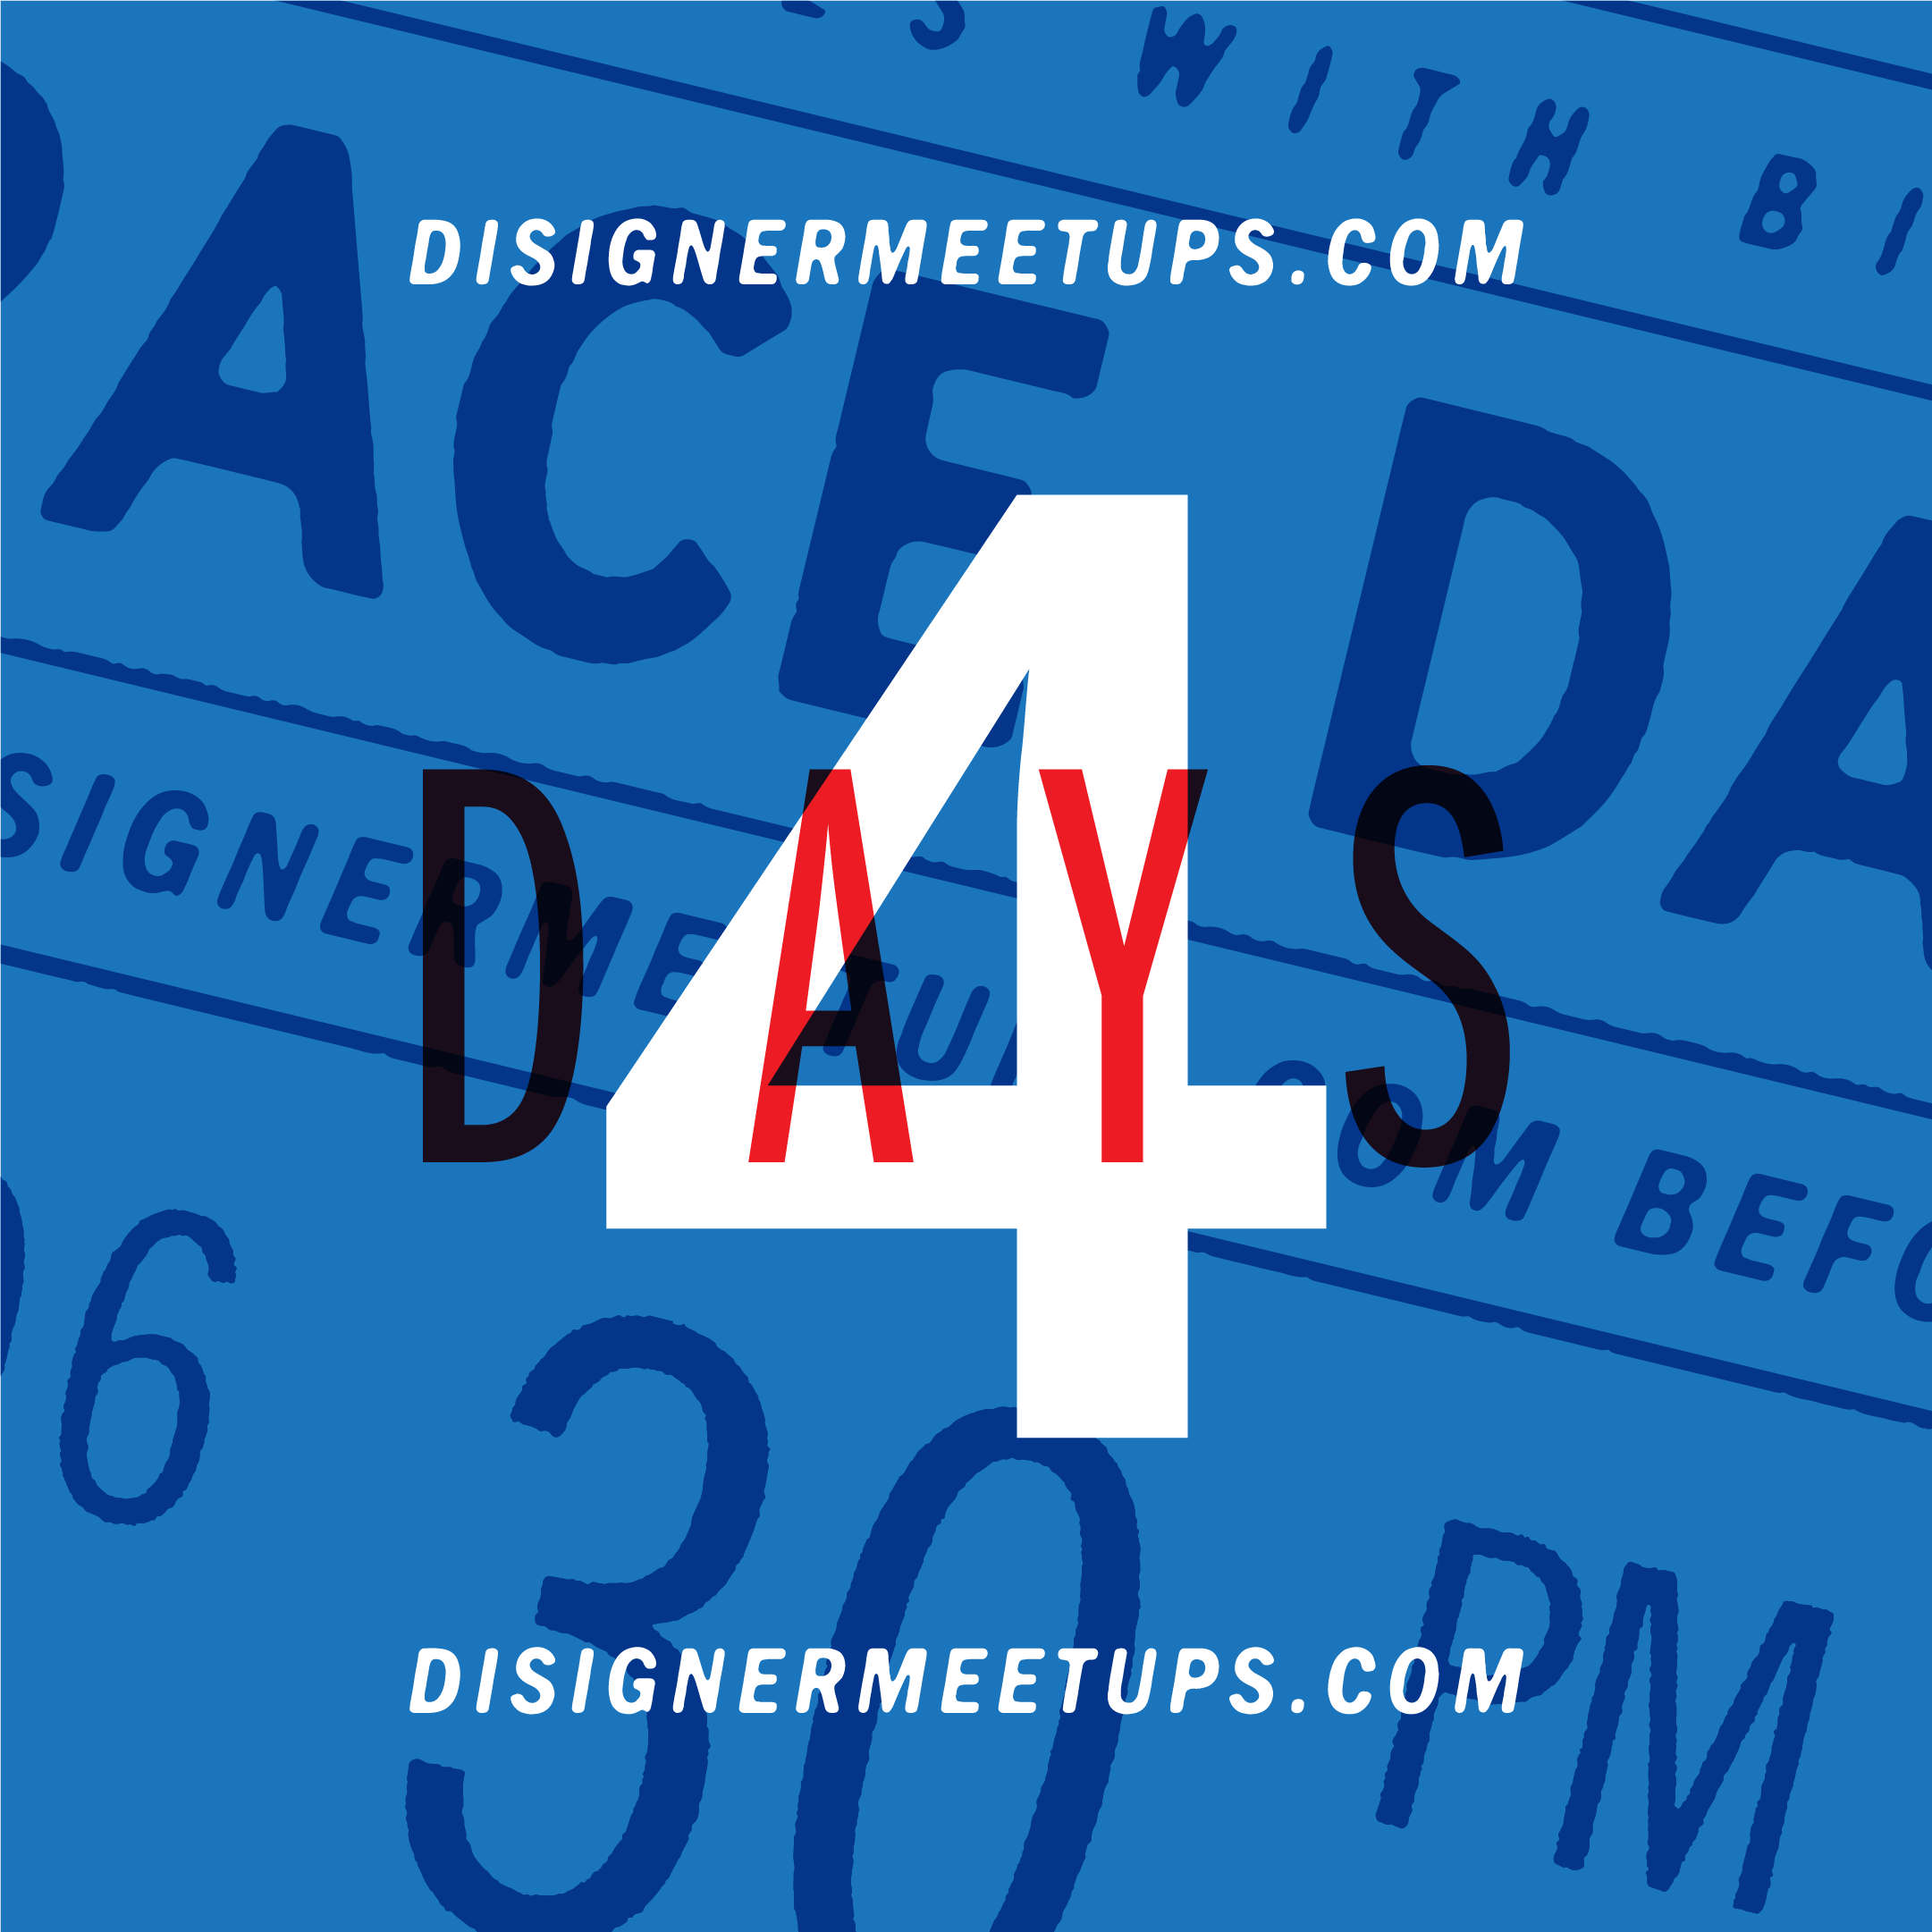 4 day